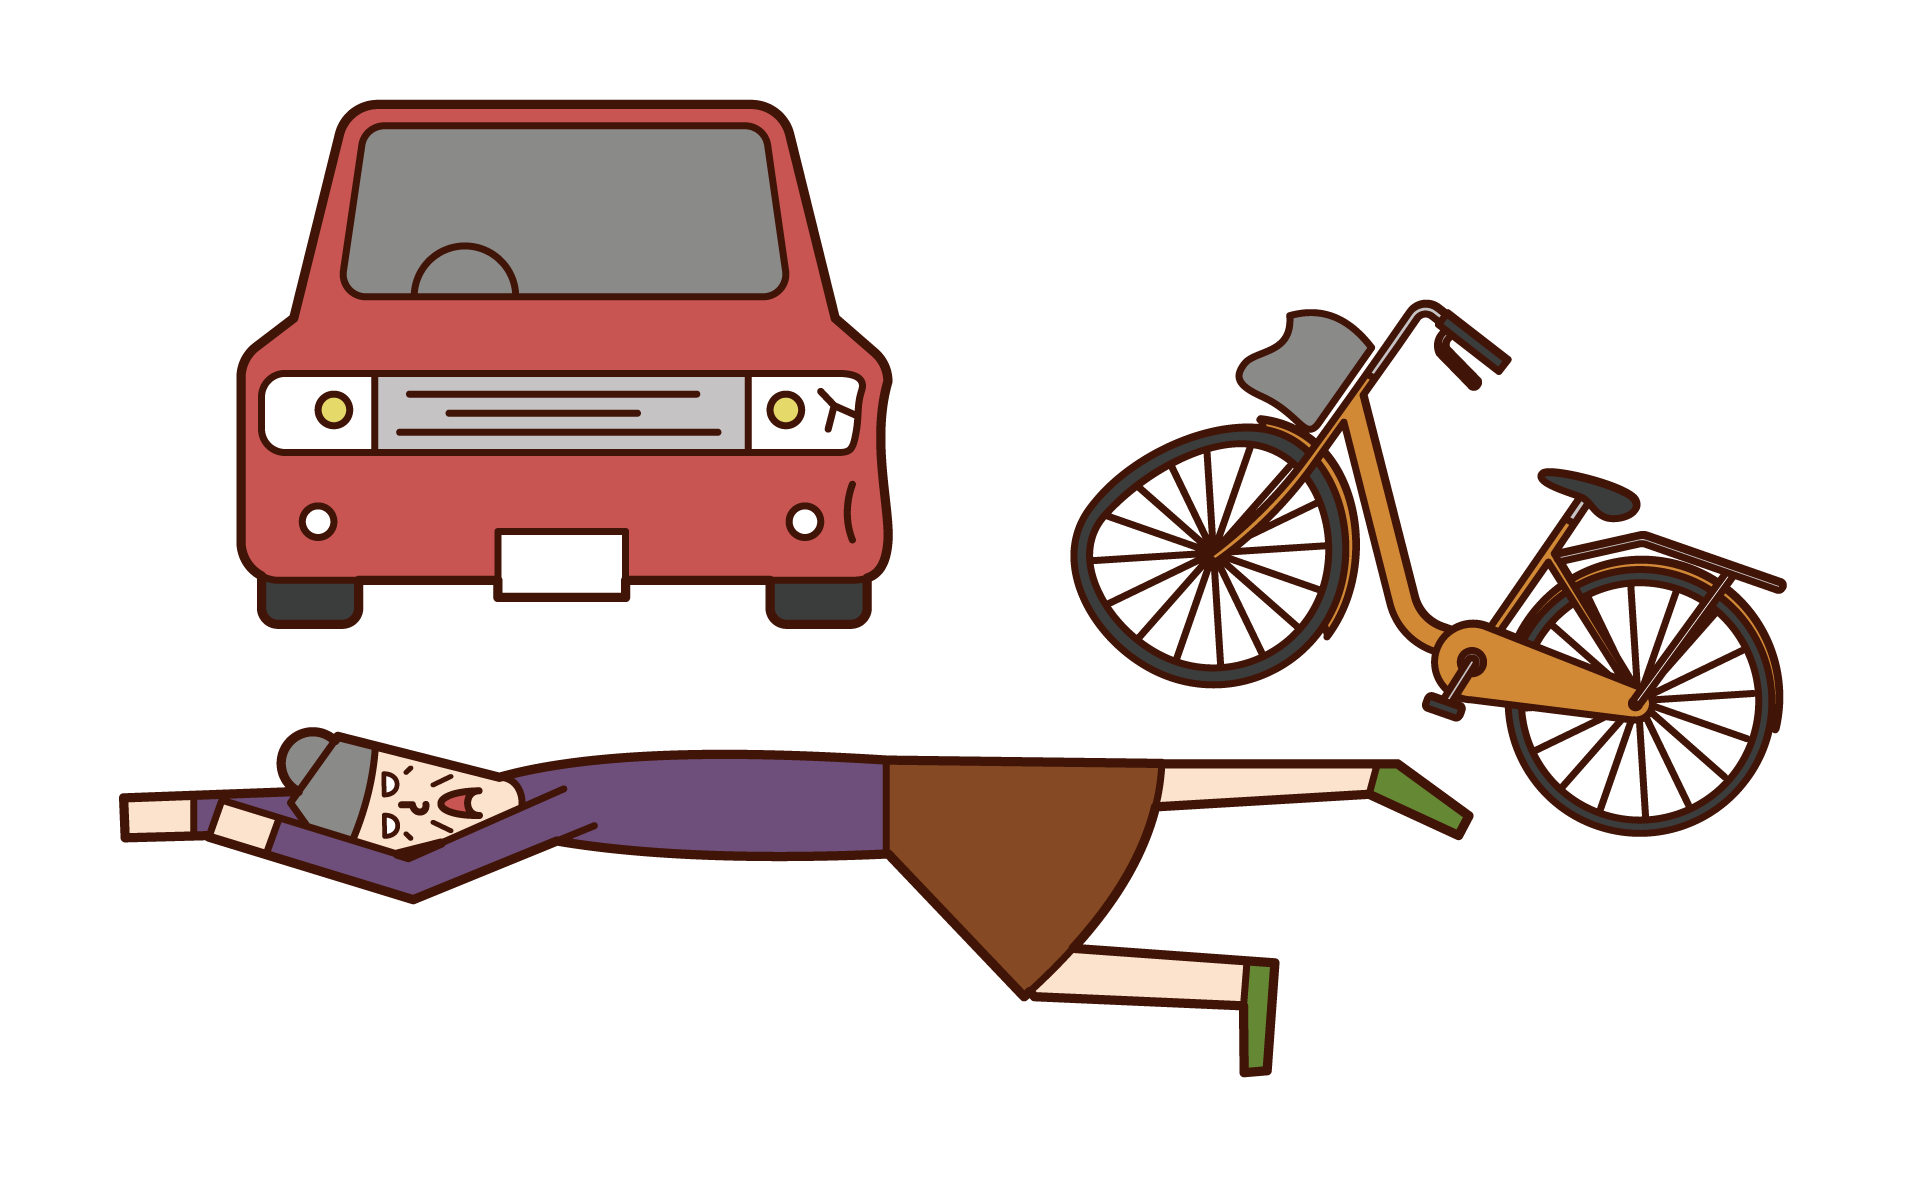 Illustration of a person (grandmother) who is collapsed in a traffic accident